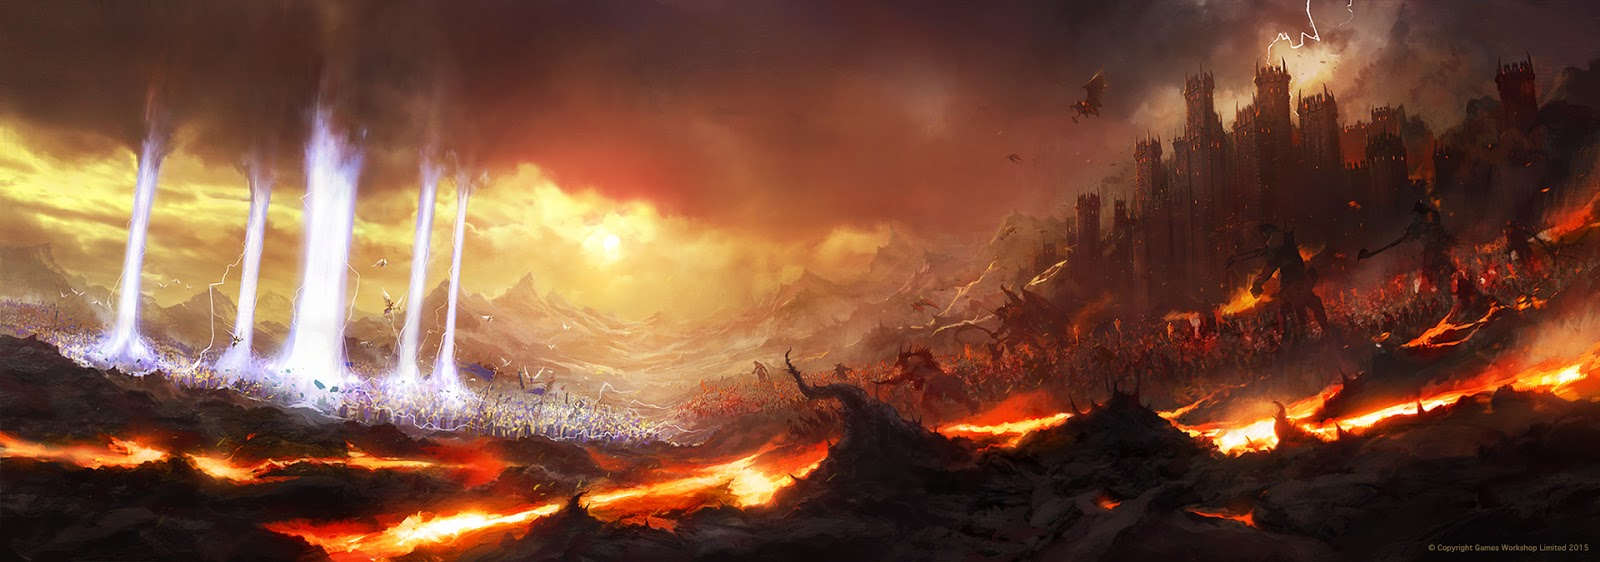 warhammer_age_of_sigmar_display_background_art____by_ev_s-d92k2oy.jpg